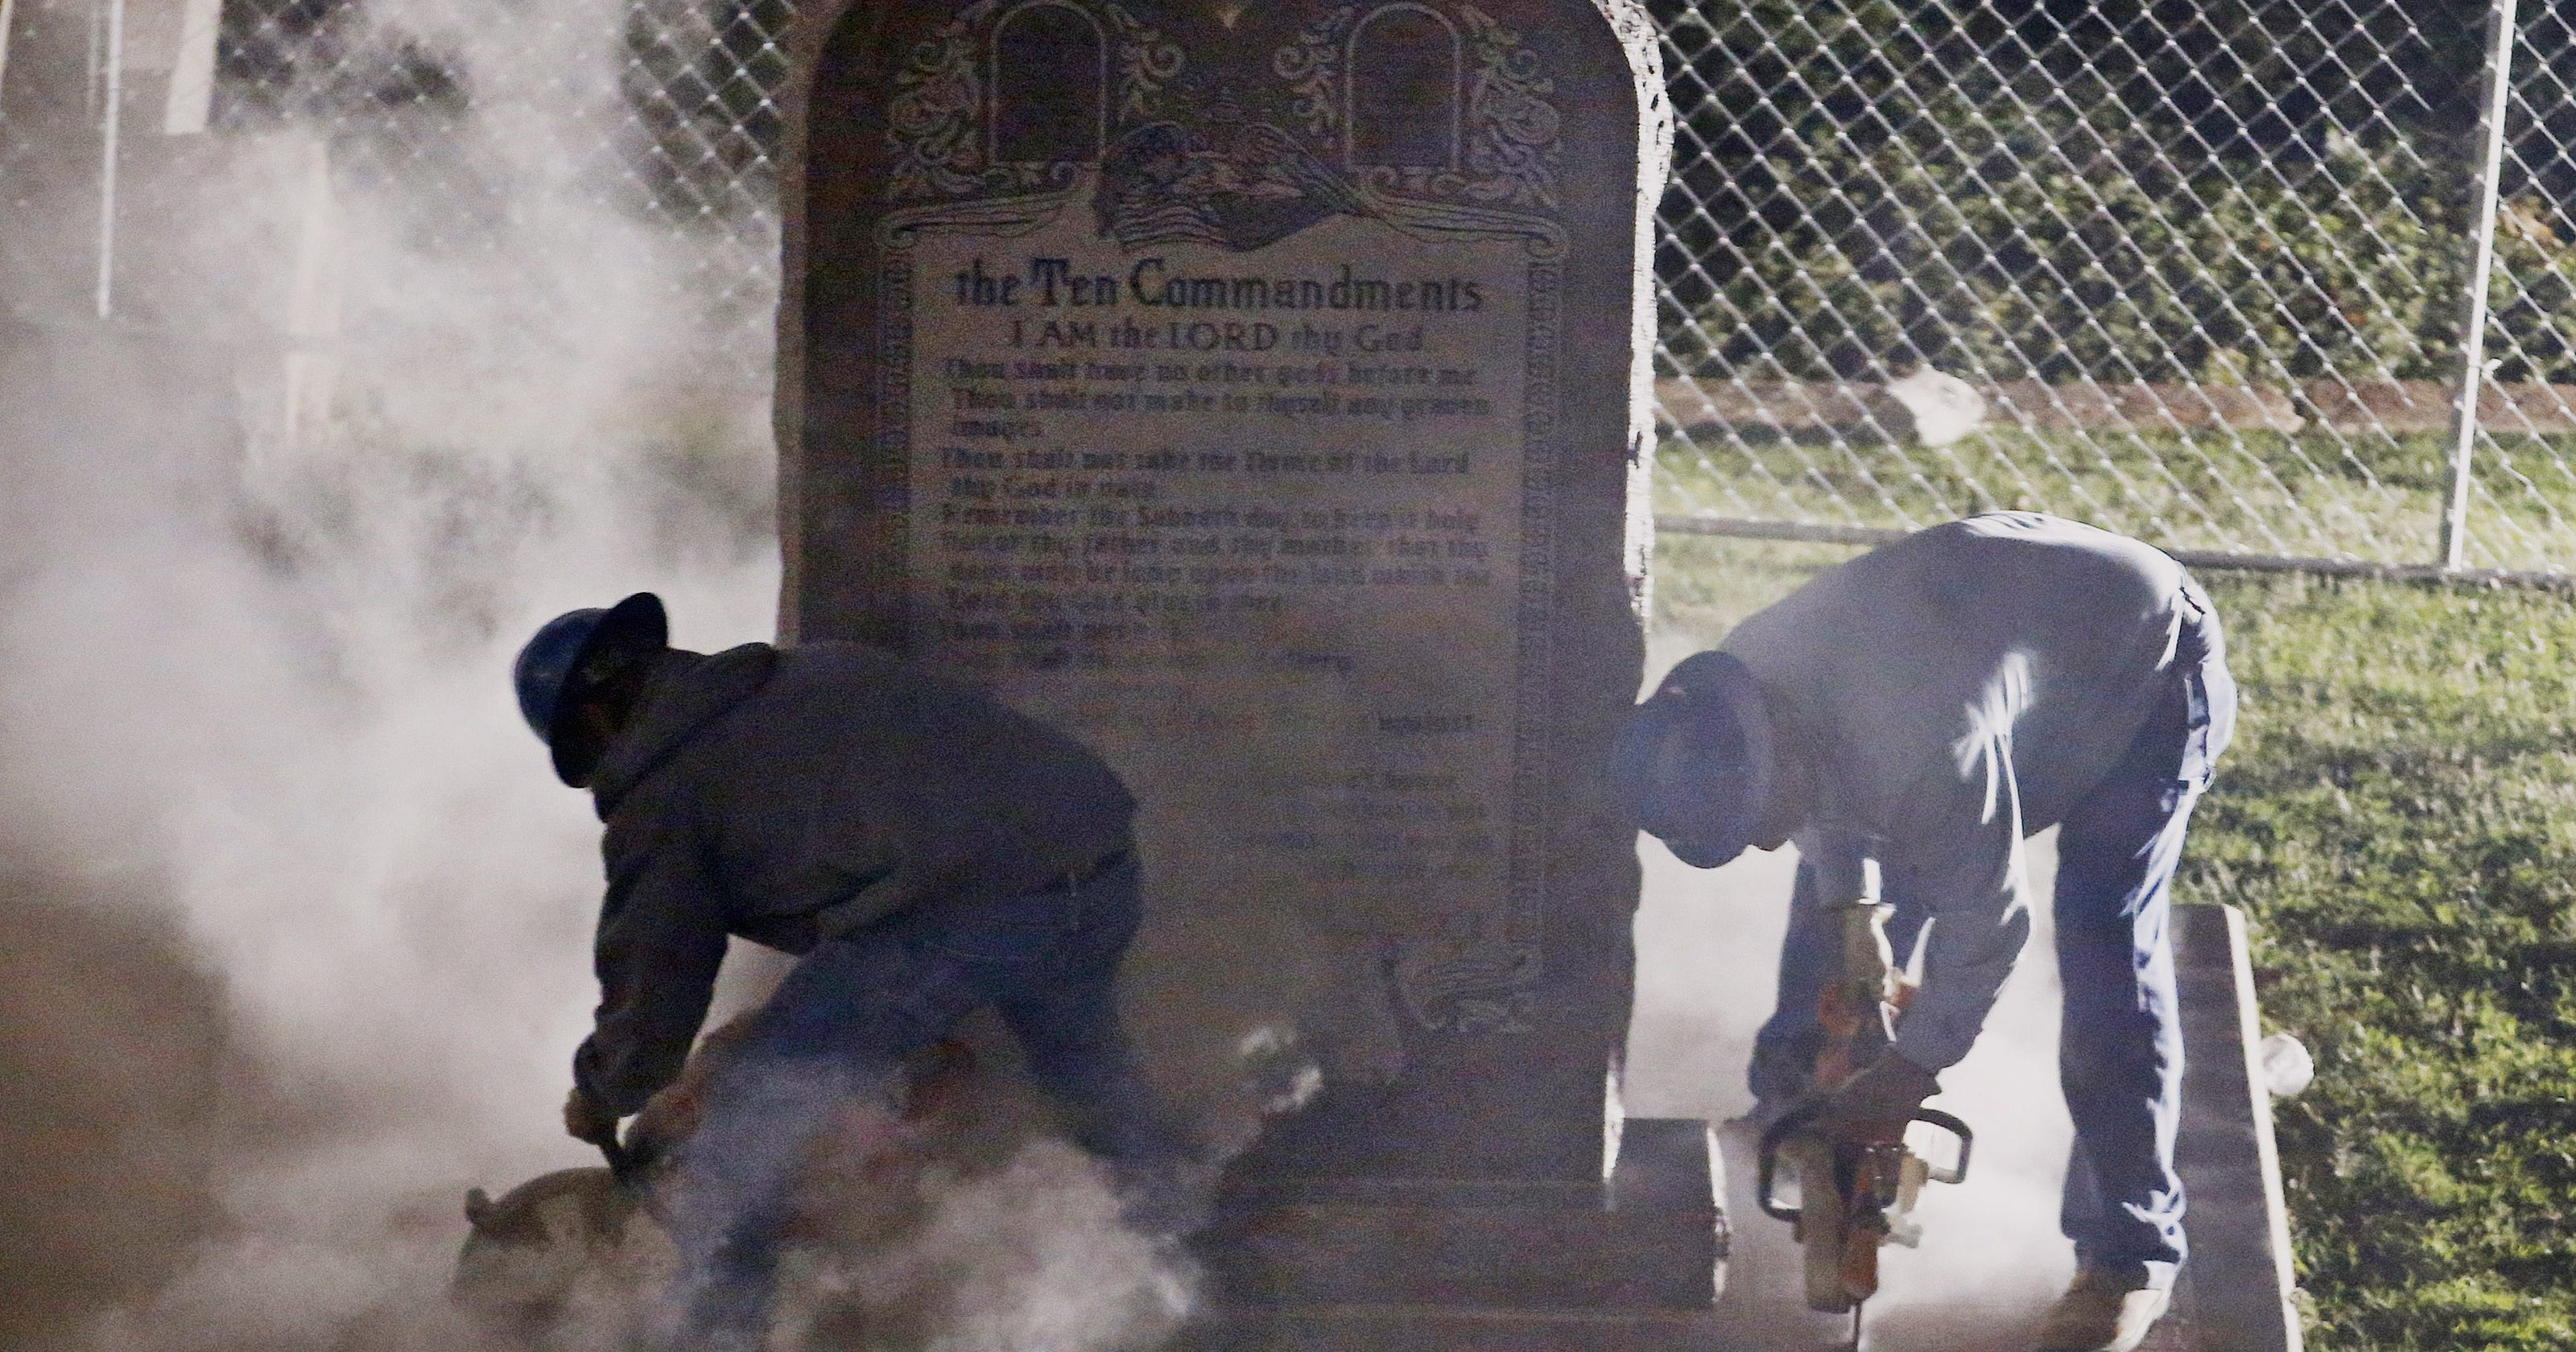 10 Commandments Removed From Okla Capitol